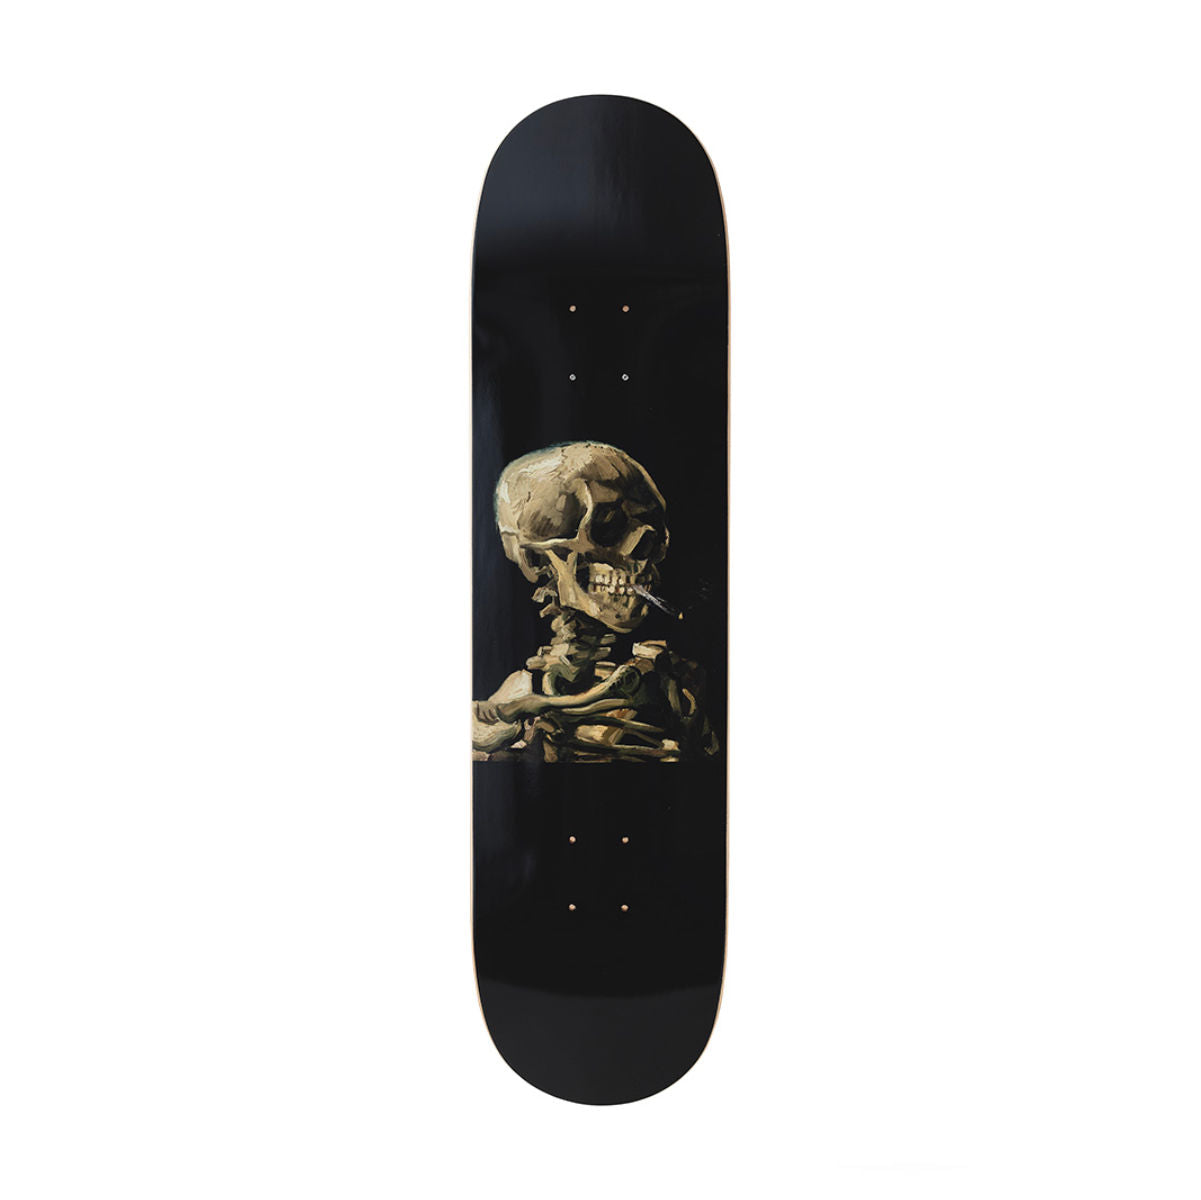 The Skateroom skateboard, VVincent Van Gogh Skull Of A Skeleton With Burning Cigarette